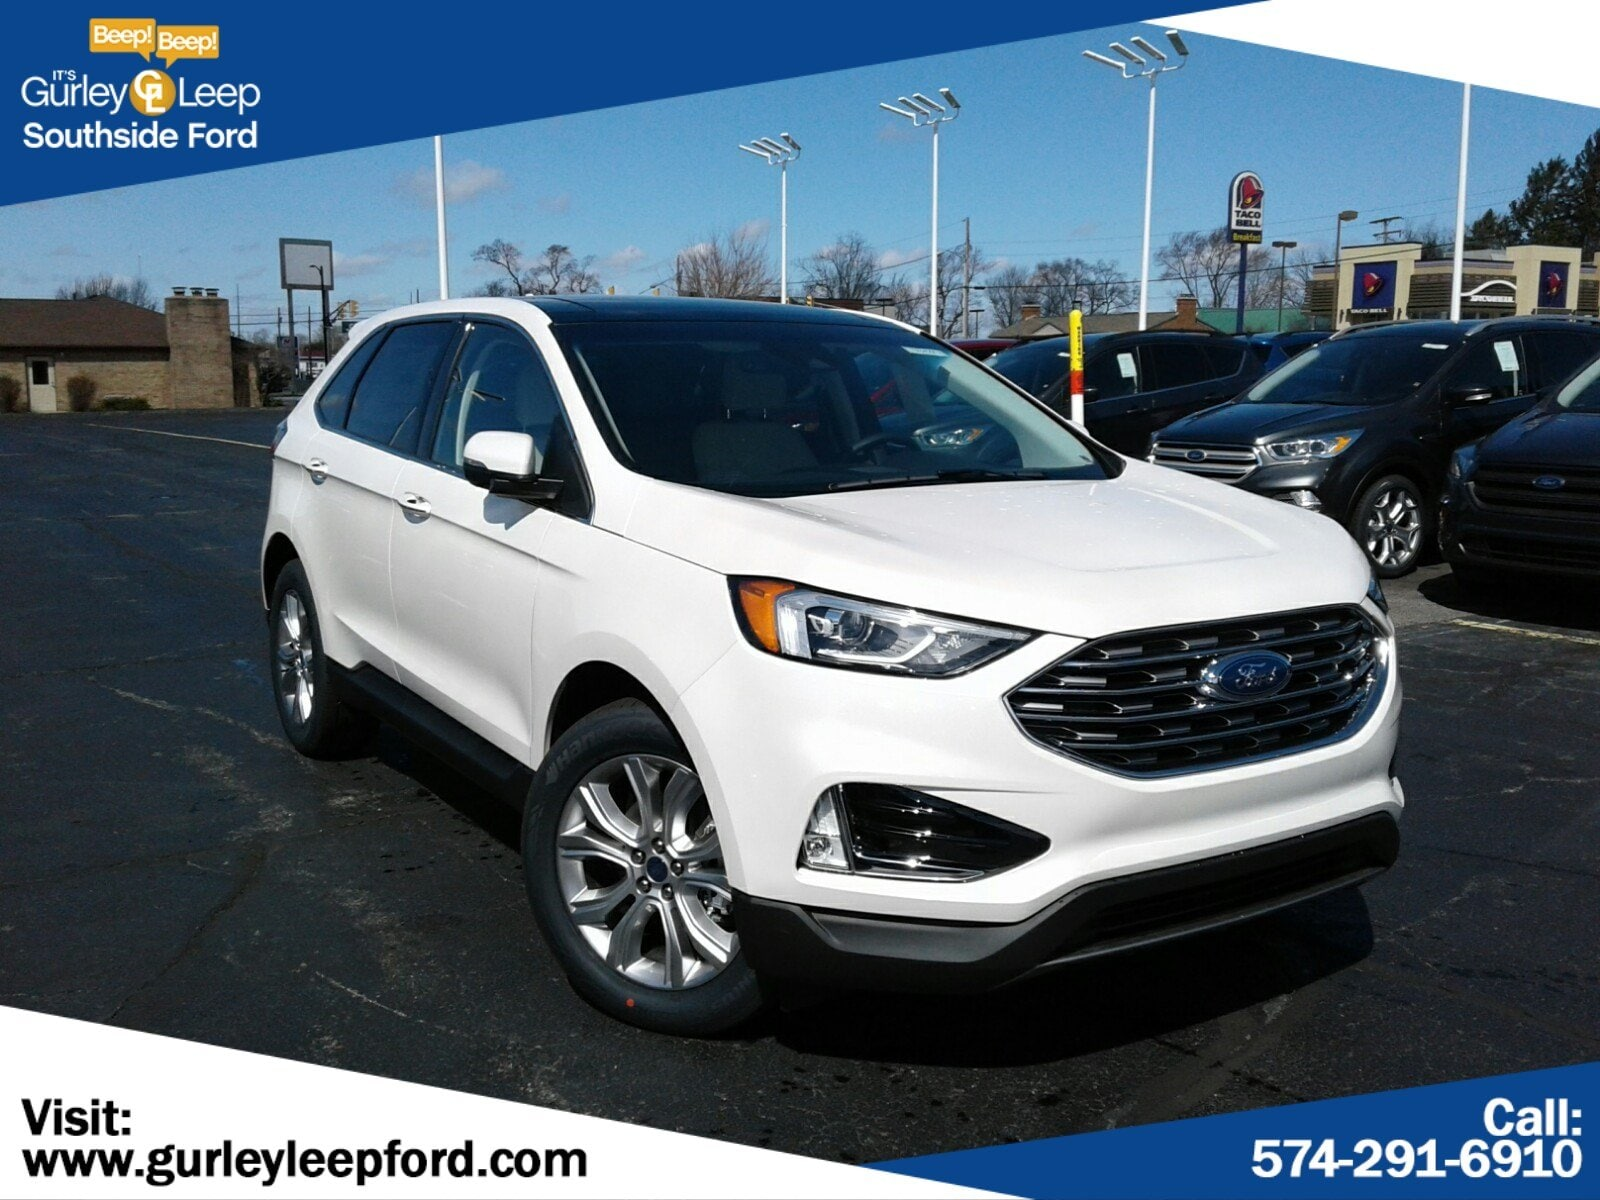 New Featured 2019 Ford Edge Titanium SUV for sale near you in South Bend, IN